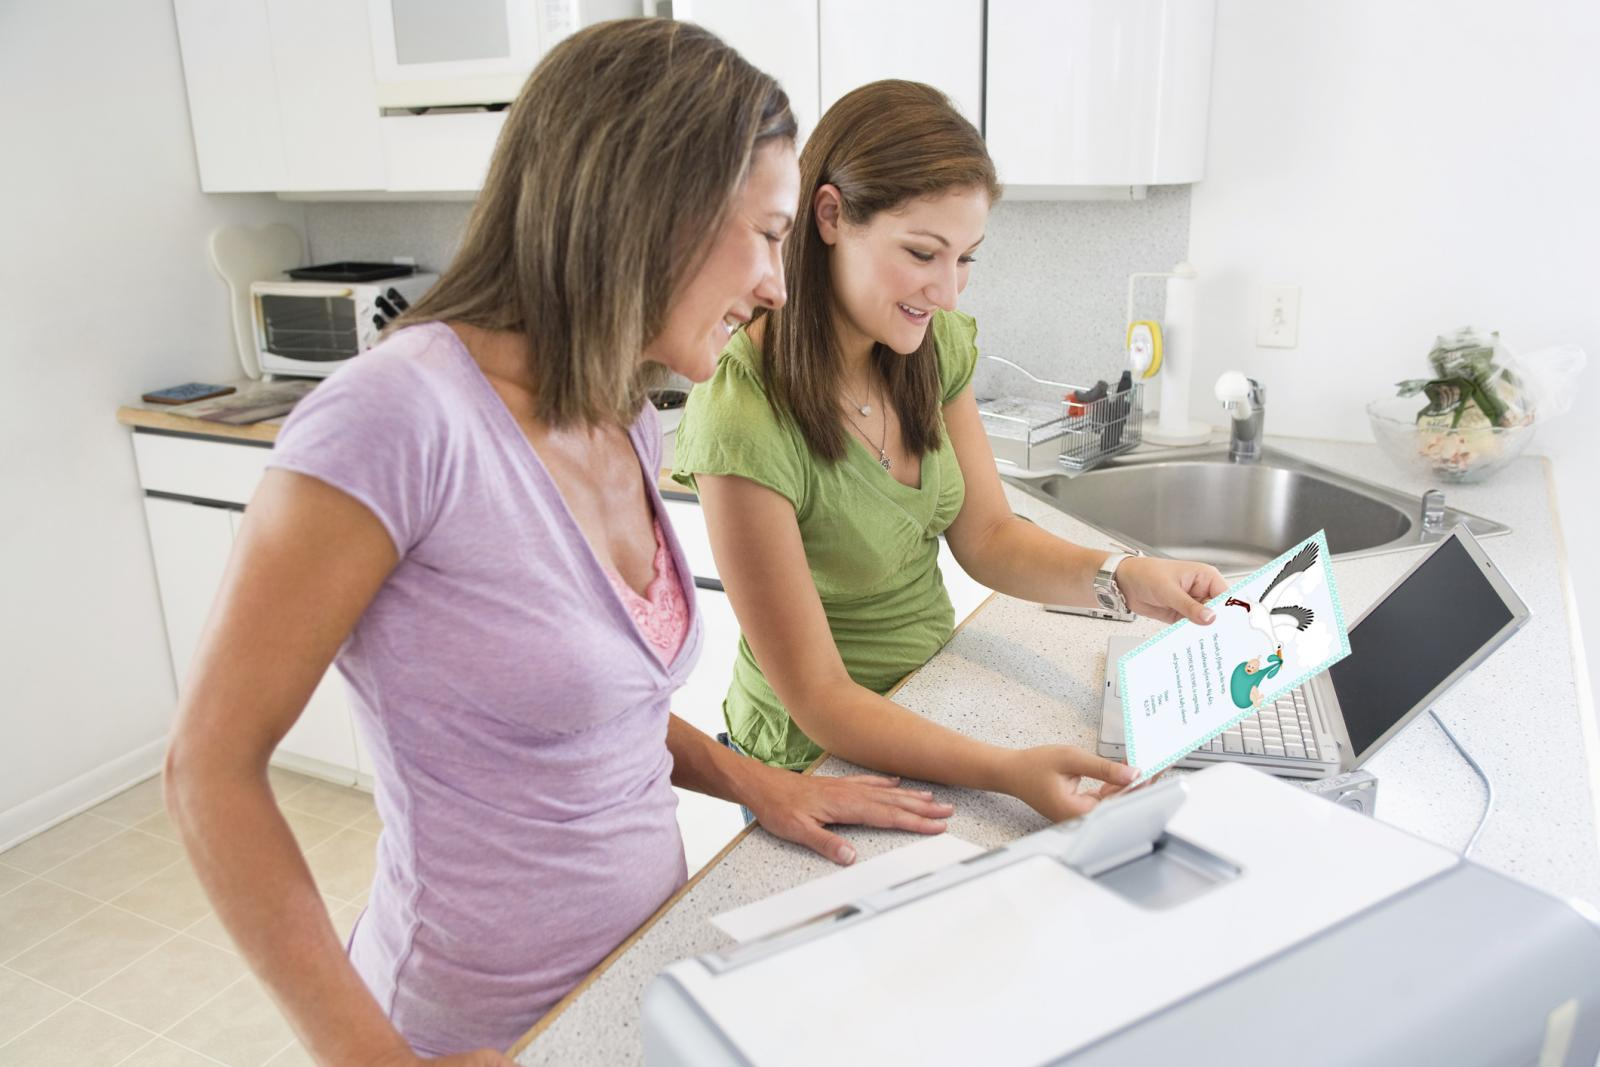 Mother and daughter using computer and printer